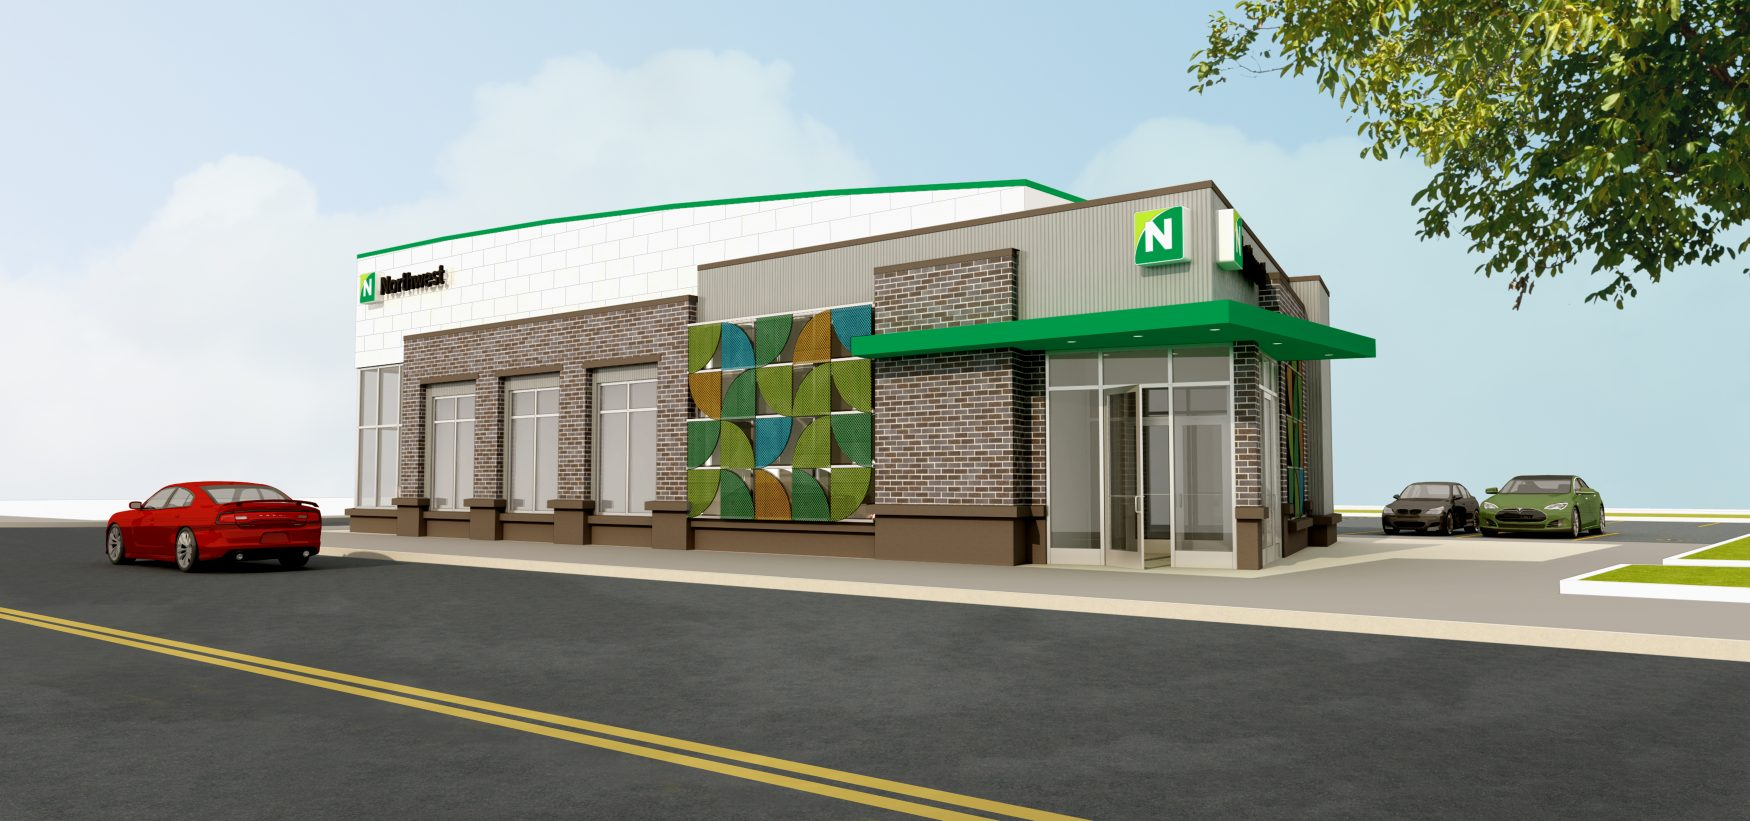 Northwest Bank plans to open a branch on Jefferson Avenue, as shown in this rendering.